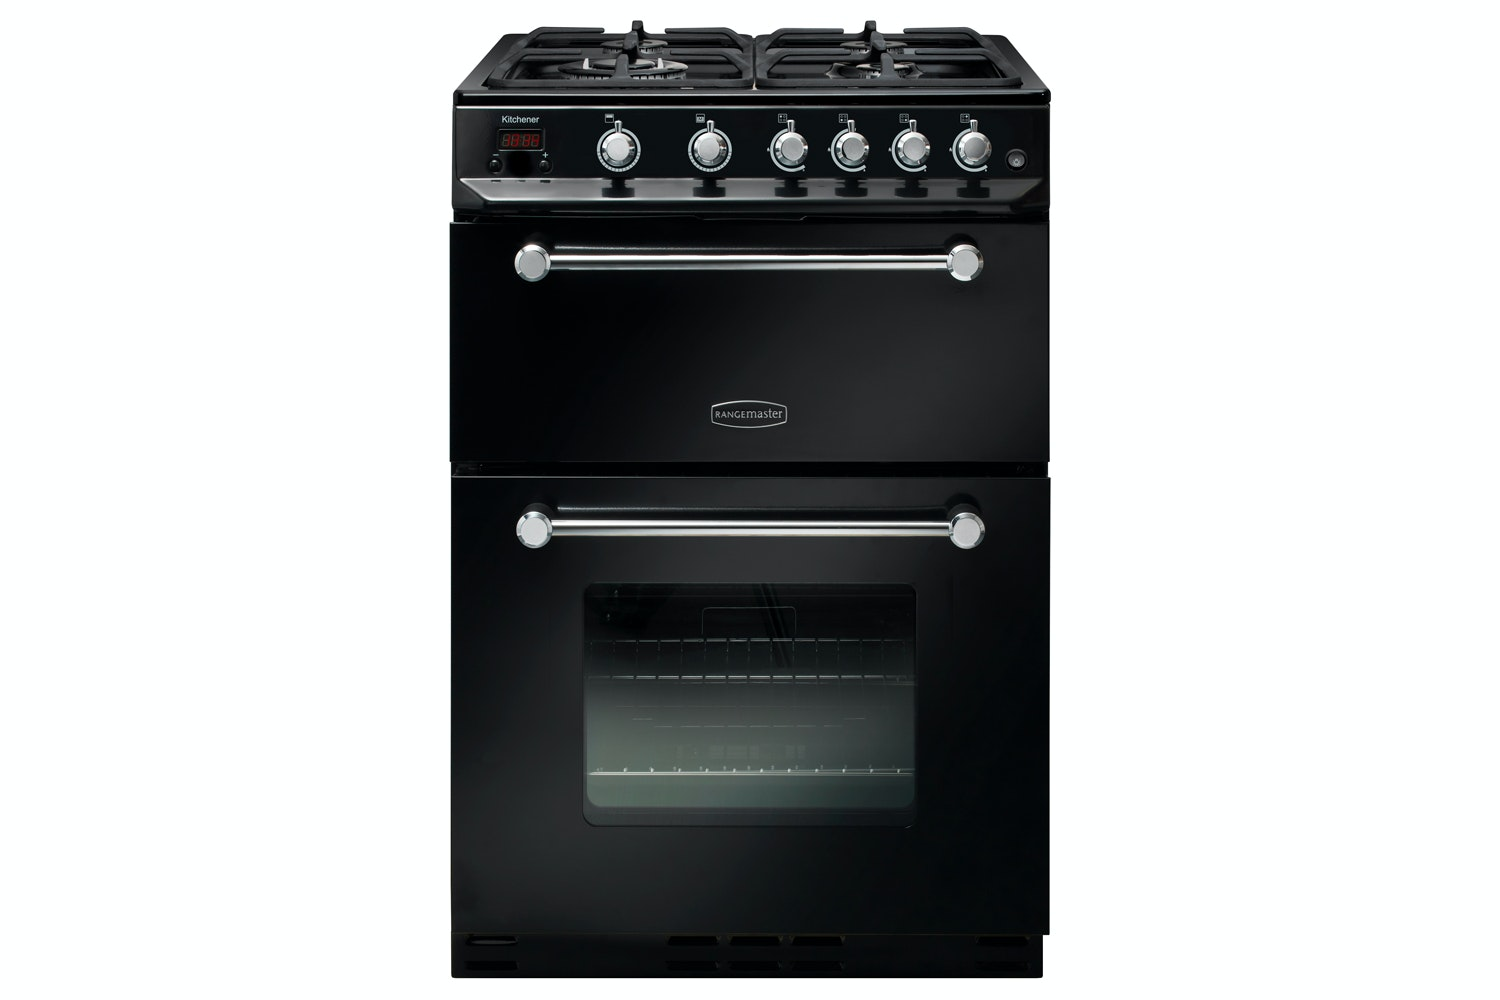 Rangemaster Kitchener Gas Cooker | KCH60NGFBL/C